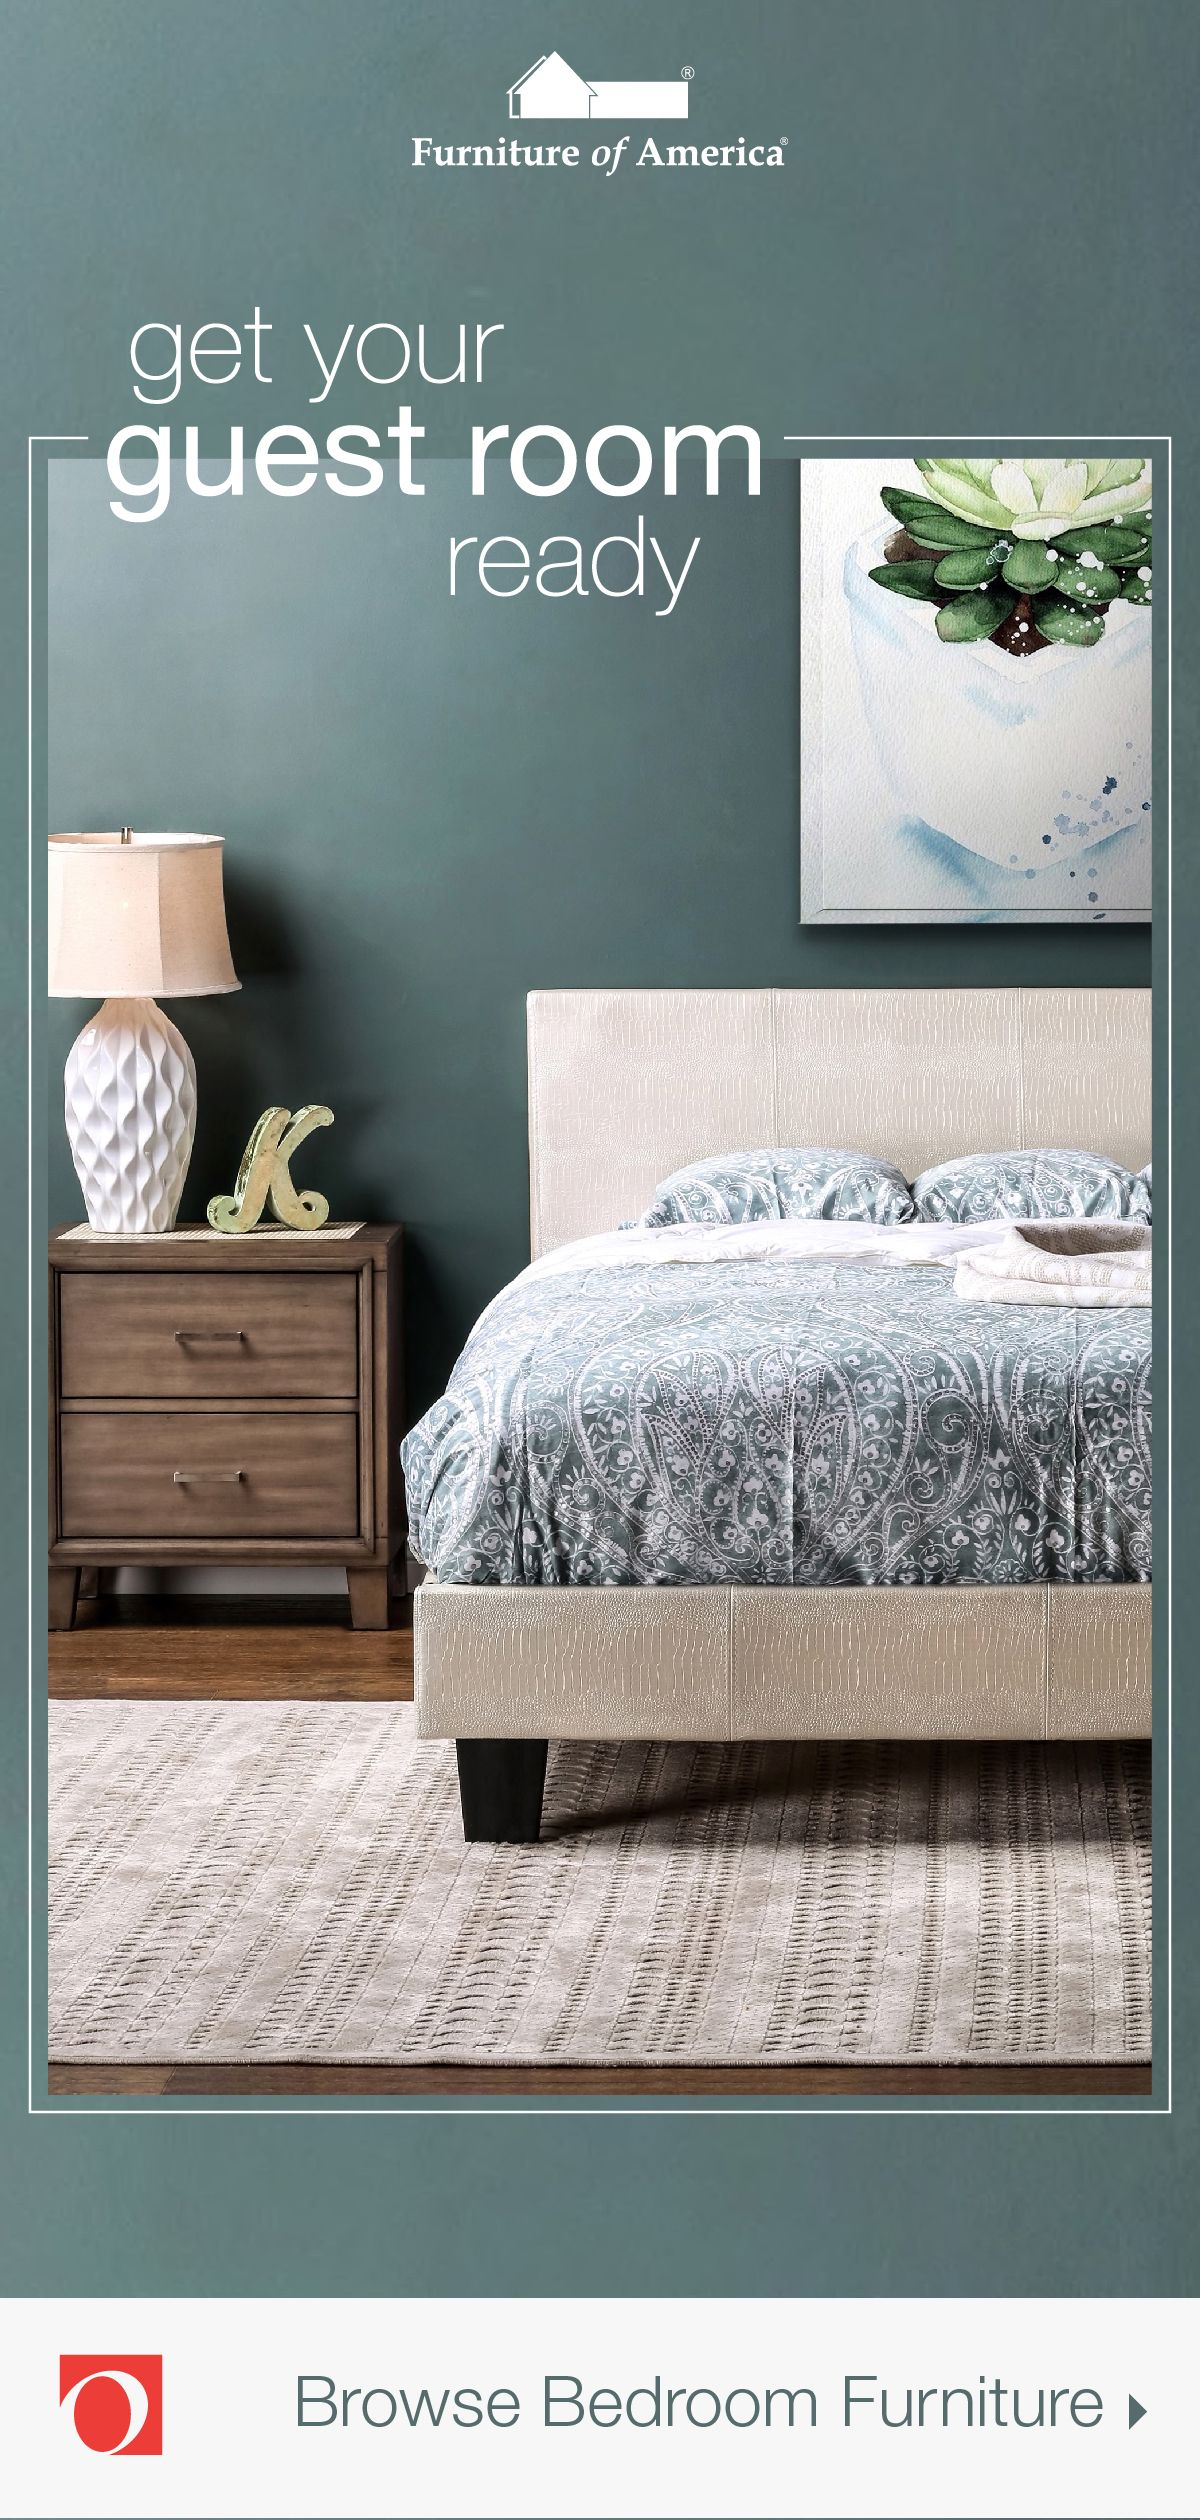 Bedroom Creator Online: Turn That Spare Bedroom Into A Comfortable Guest Room With